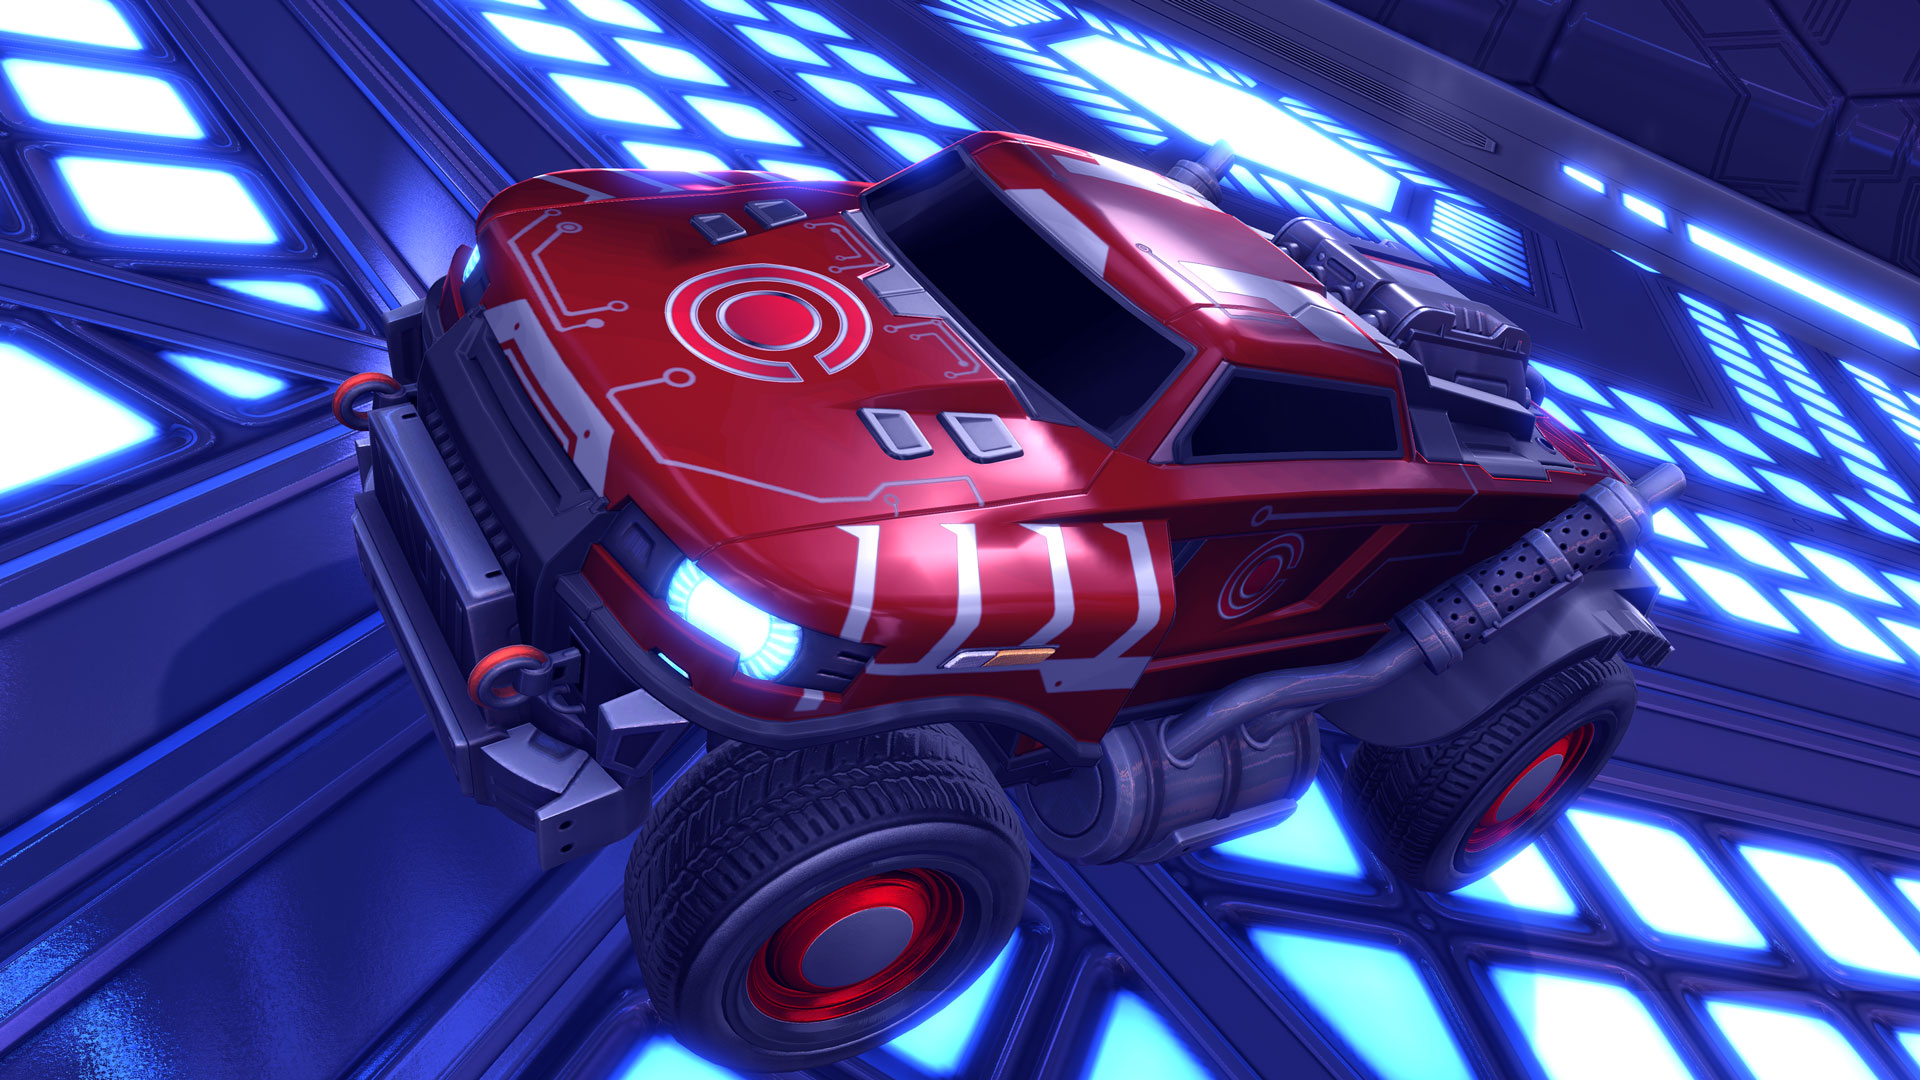 Rocket League - DC Super Heroes DLC Pack screenshot